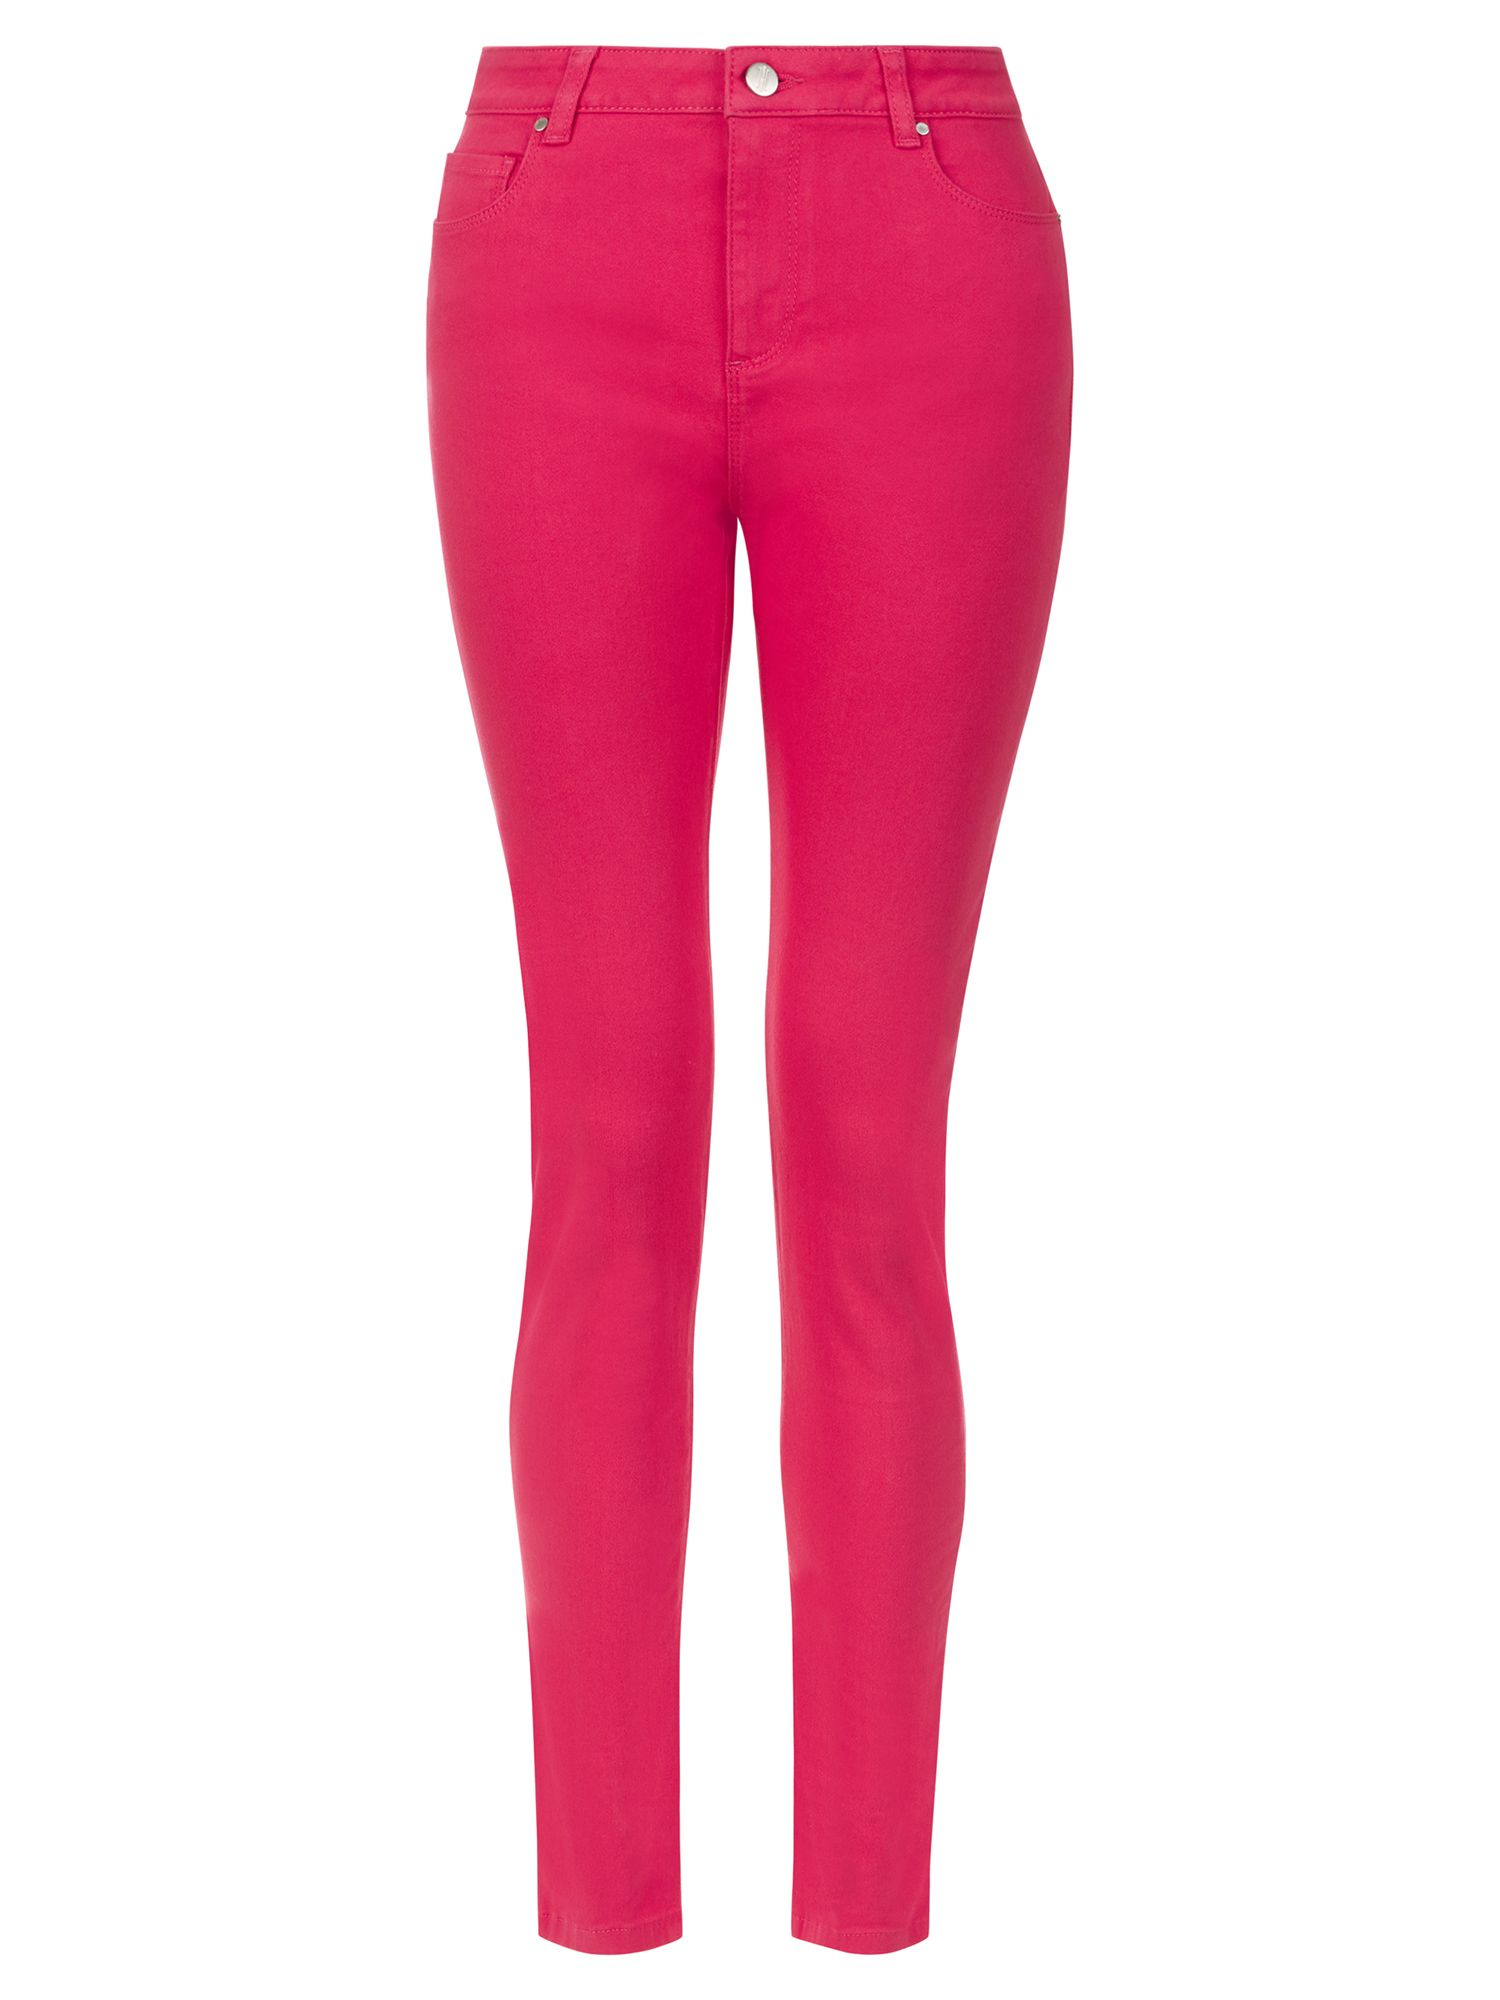 Hobbs Rivington Jean, Hot Pink